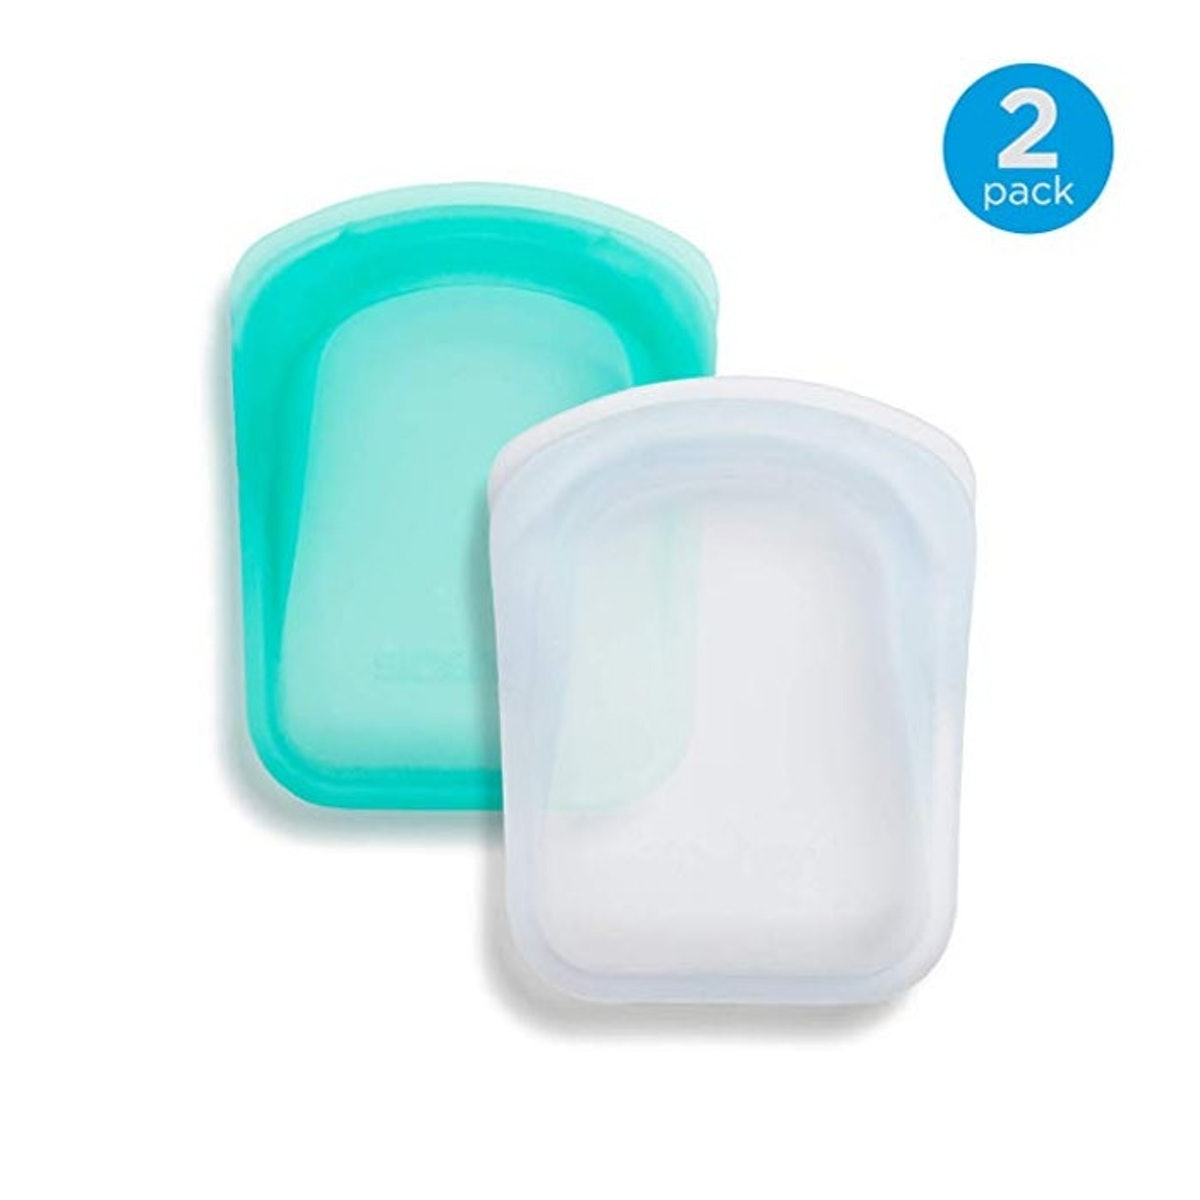 Stasher Pocket 100% Silicone Bags